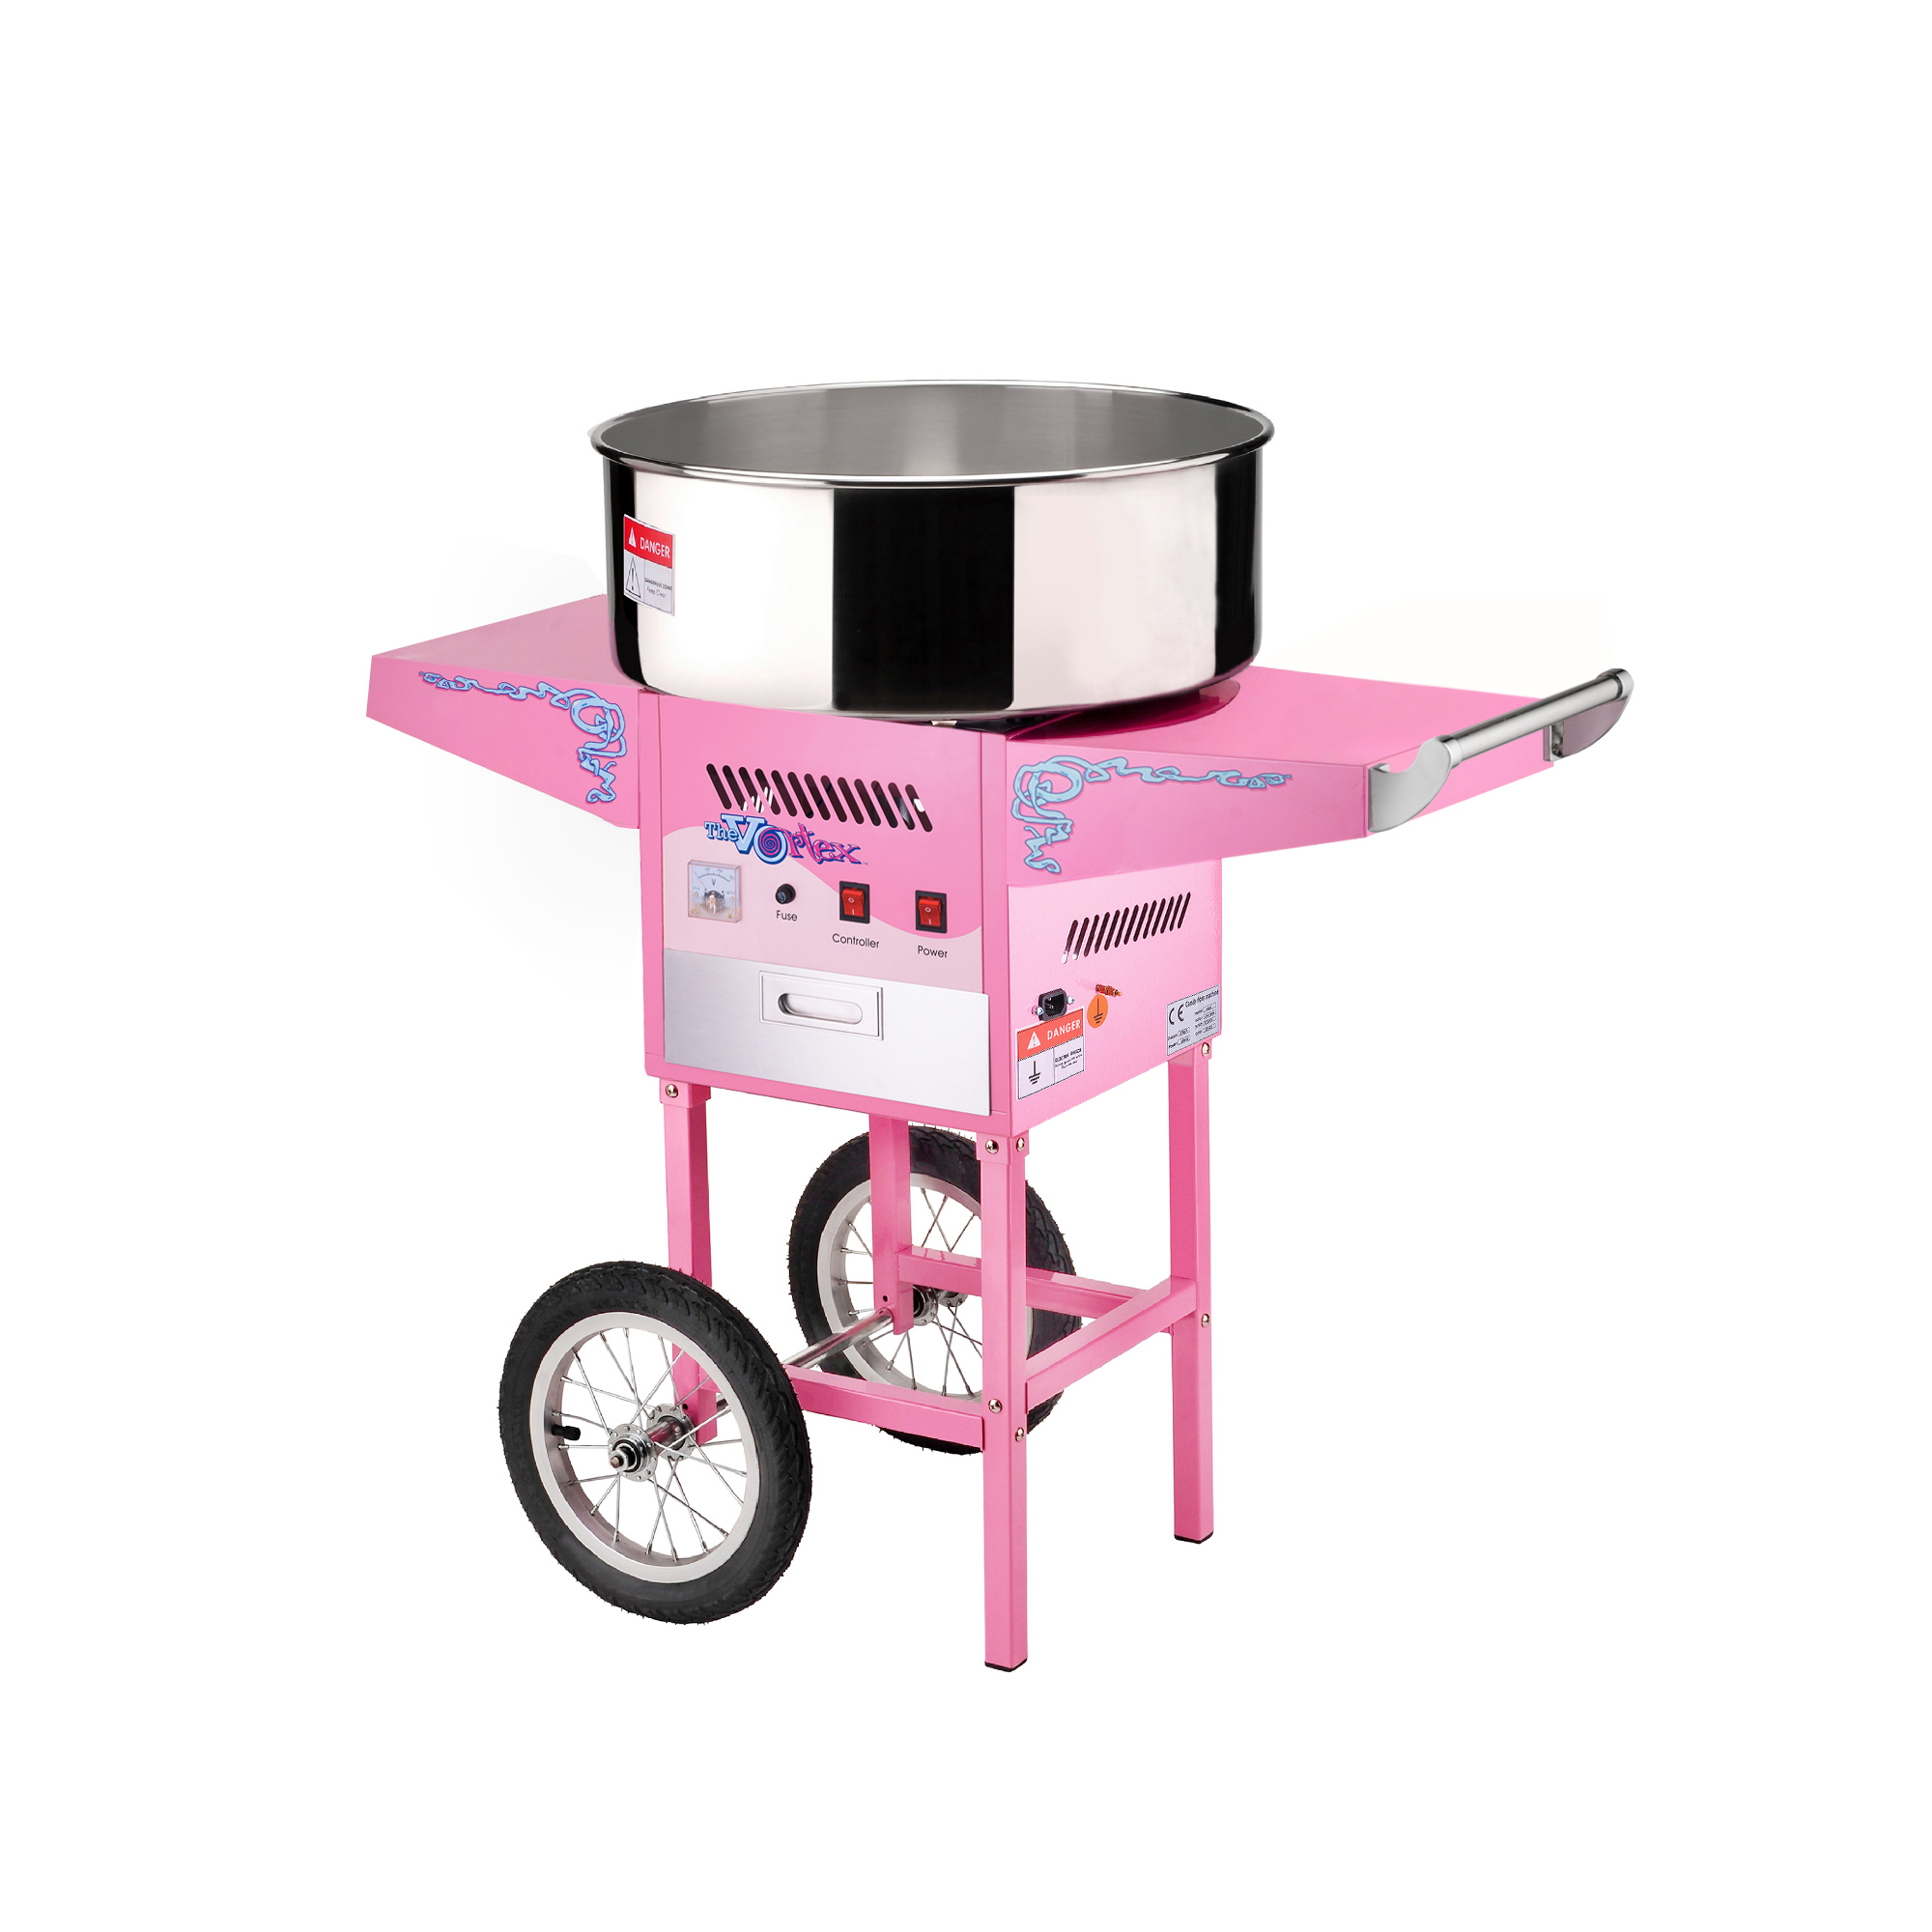 Cotton Candy Machine without cart